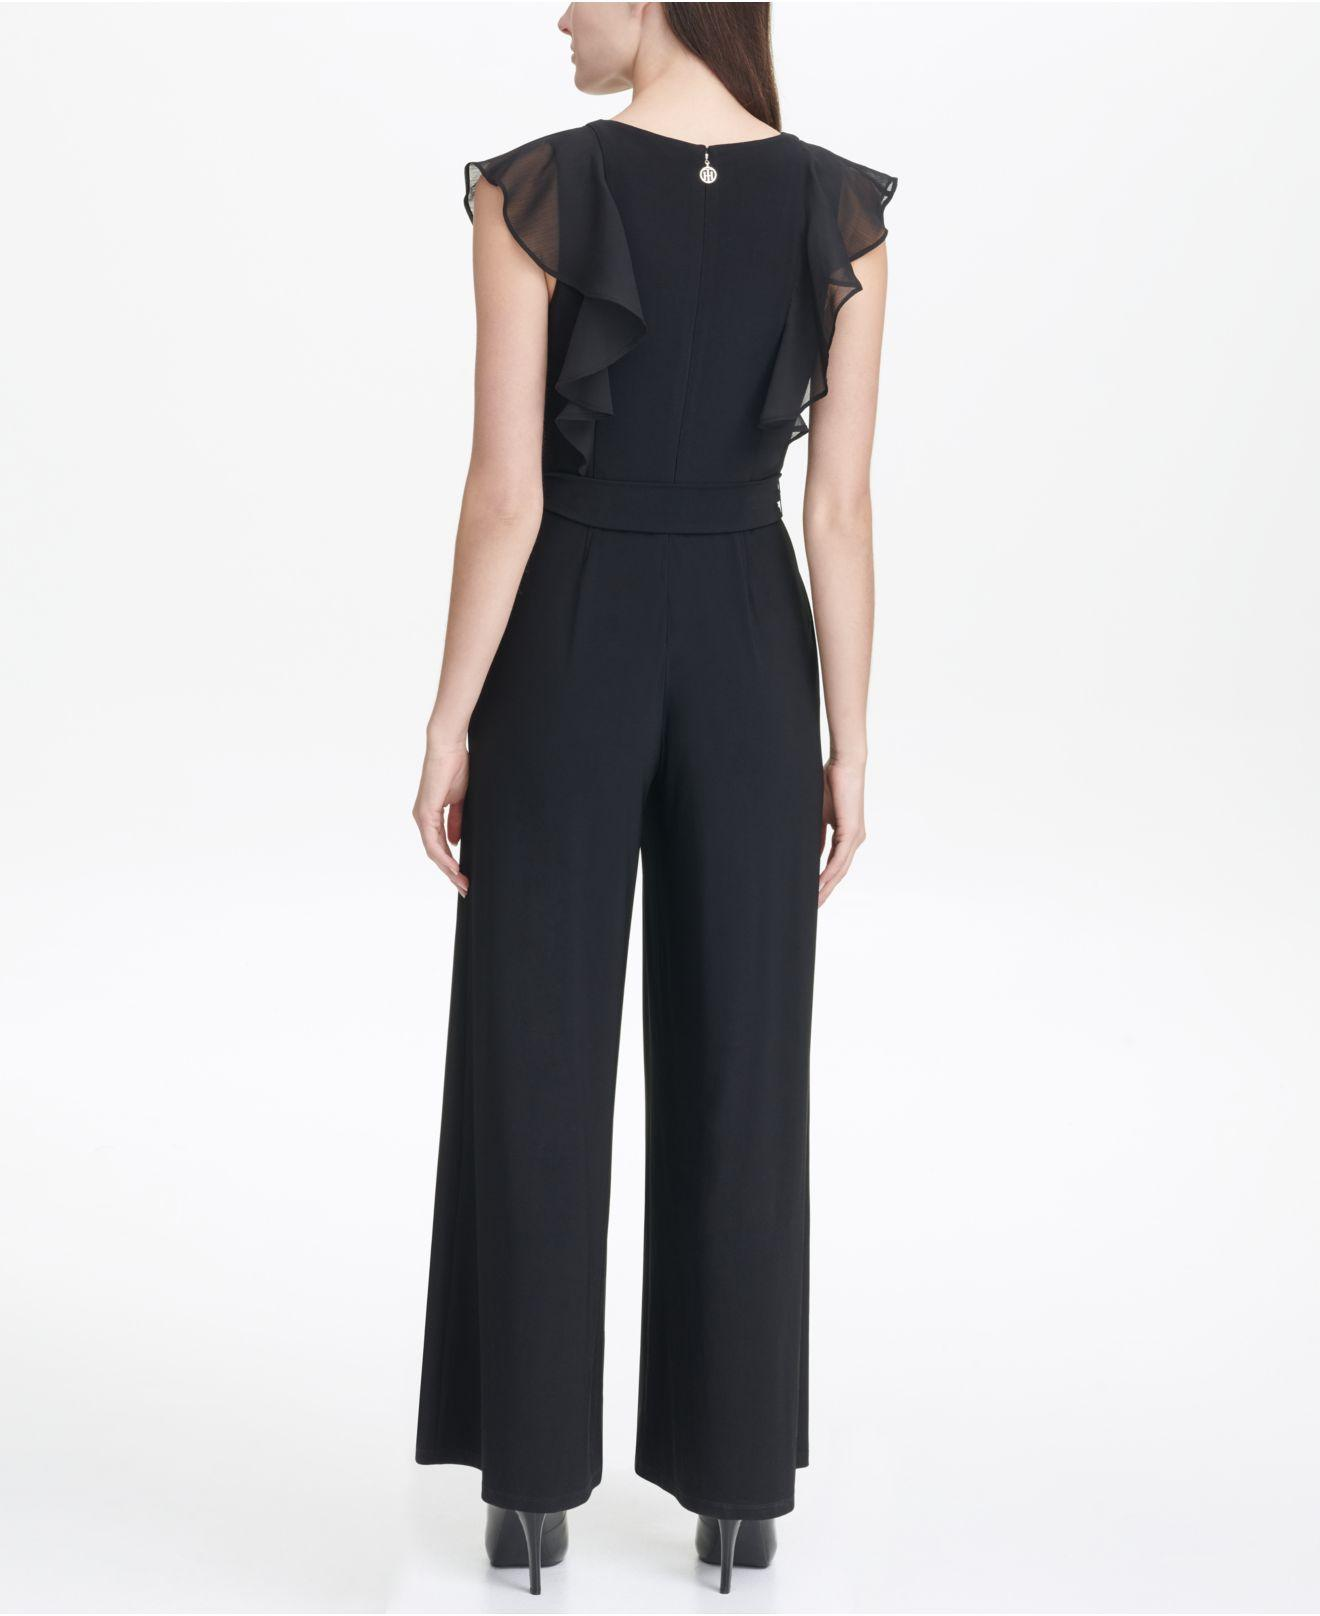 b2c6c396831 Lyst - Tommy Hilfiger Chiffon V-neck Jersey Jumpsuit With Flutter Sleeves  in Black